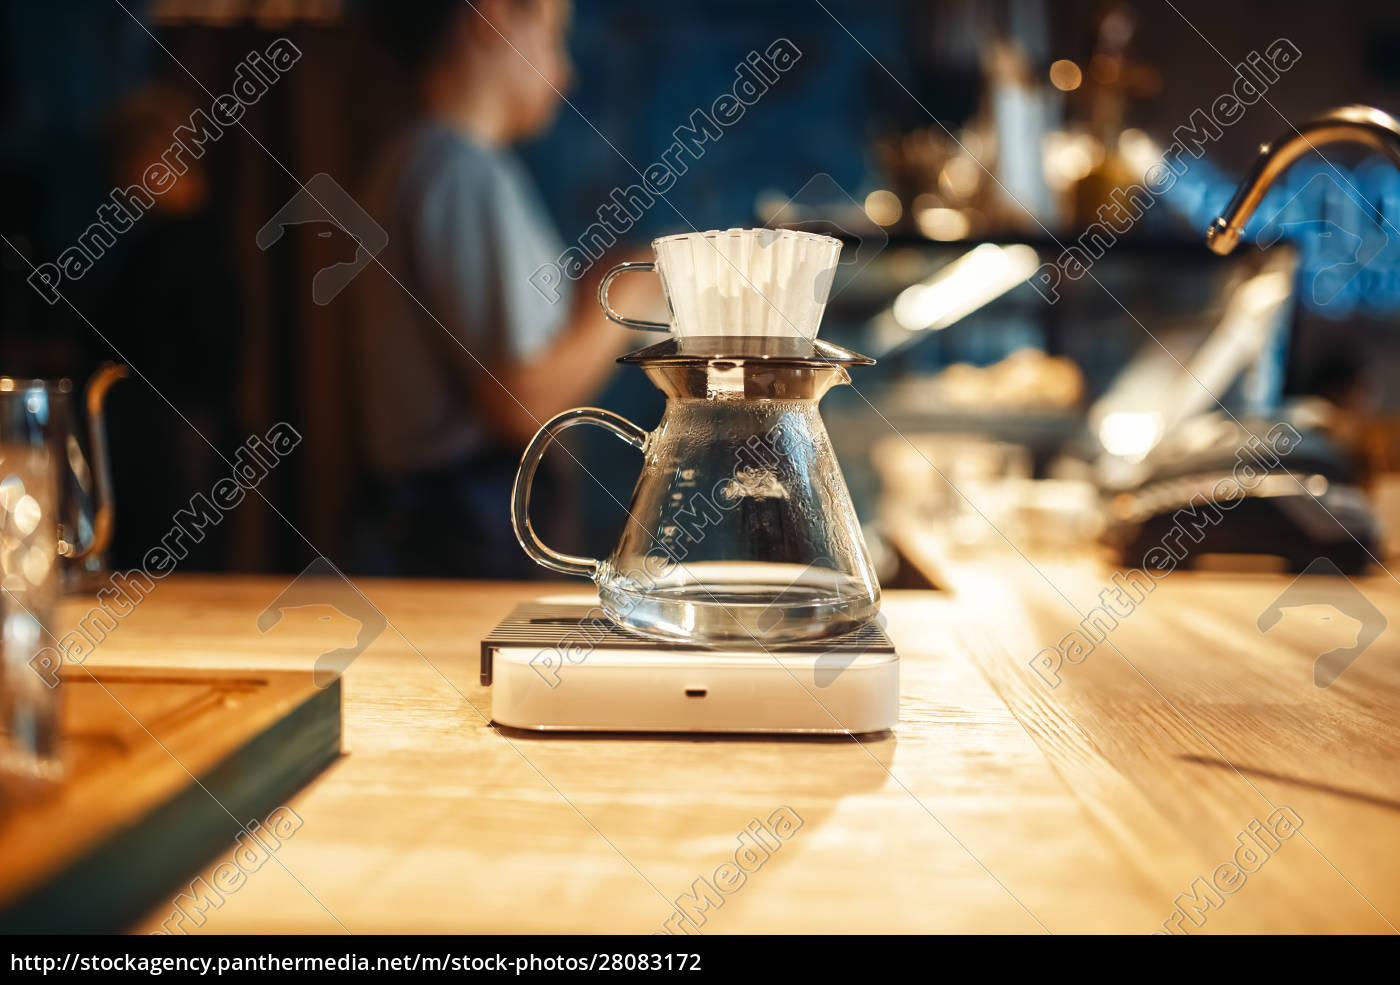 glass, coffee, pot, stands, on, stove - 28083172